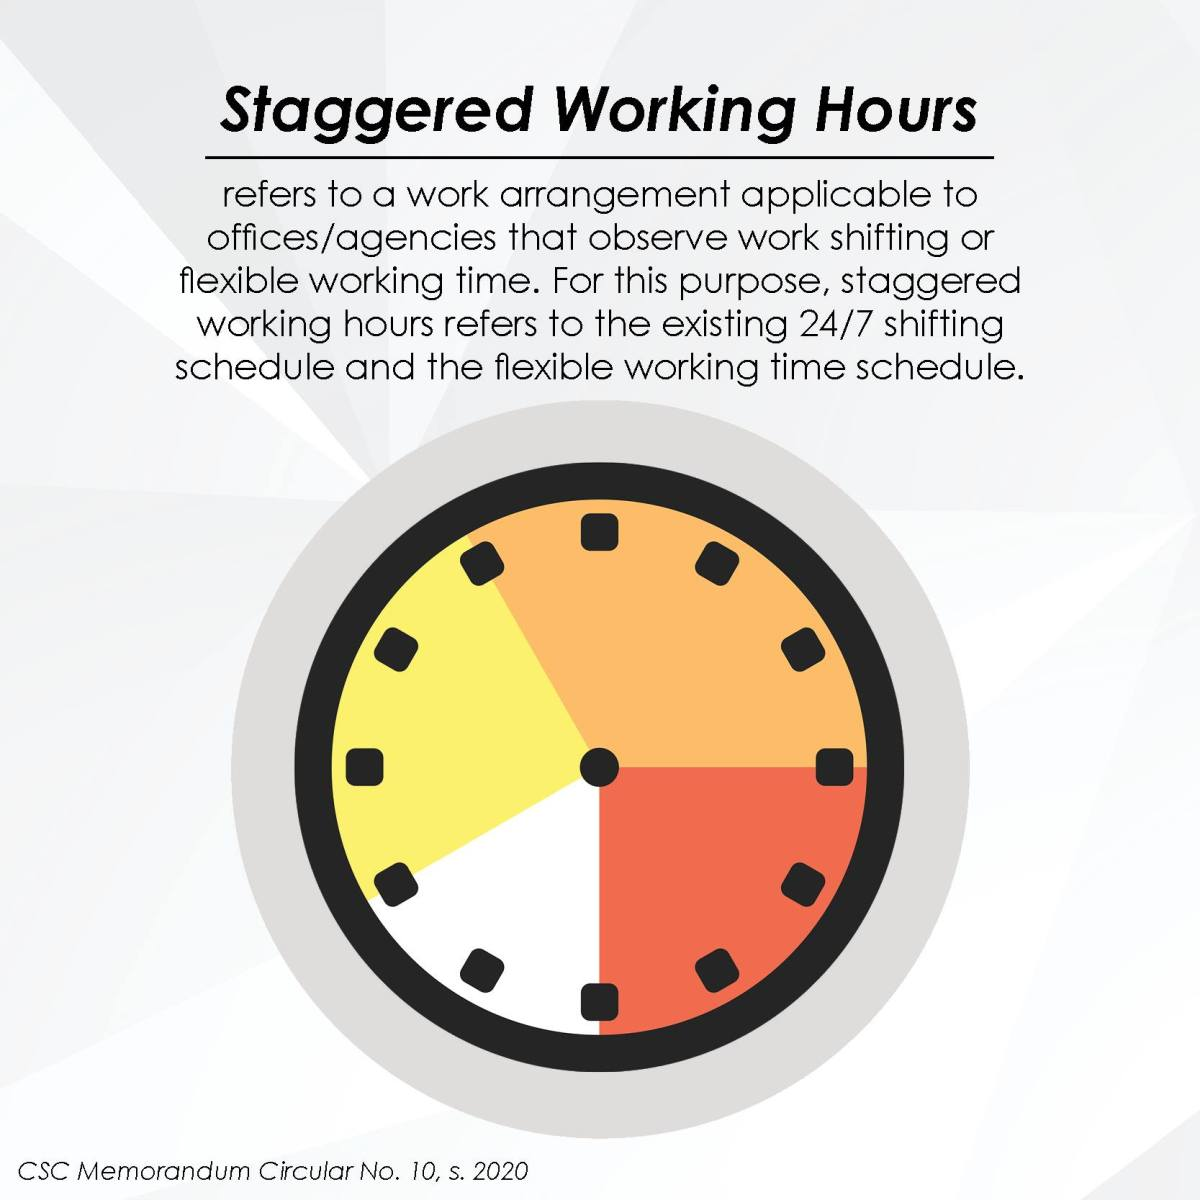 Staggered Working Hours